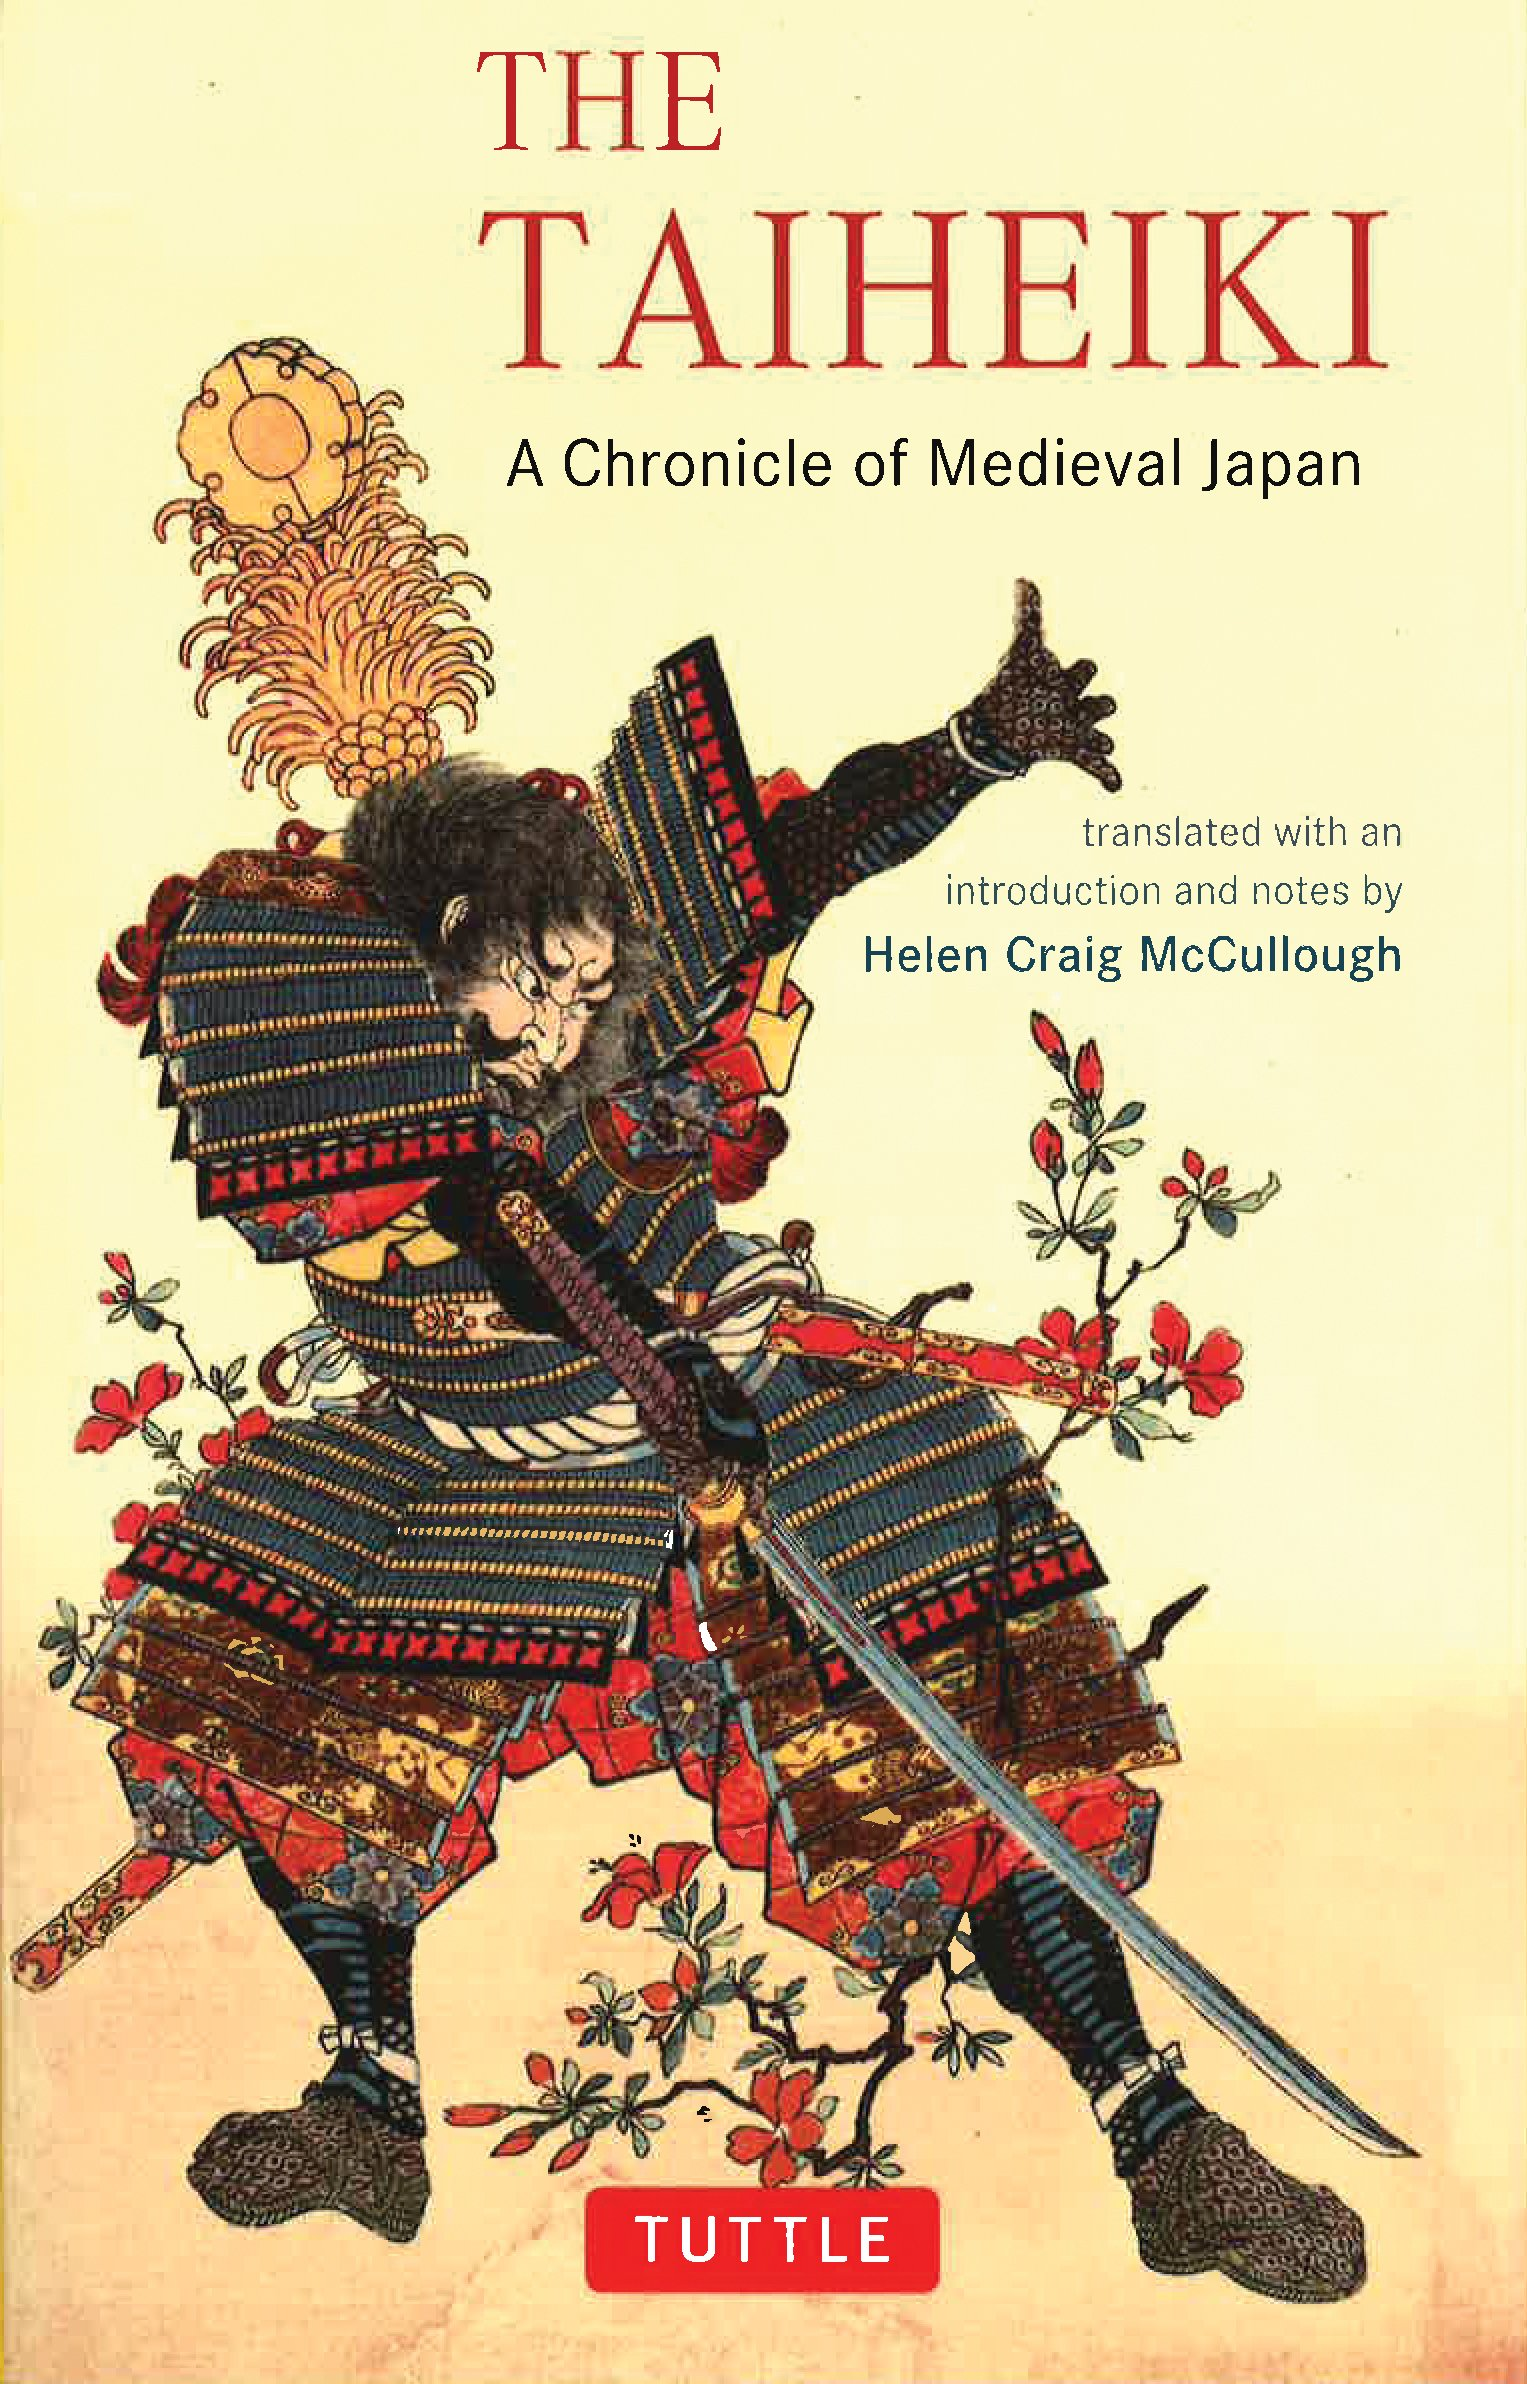 Download The Taiheiki: A Chronicle of Medieval Japan - translated with an introduction and notes (Tuttle Classics) pdf